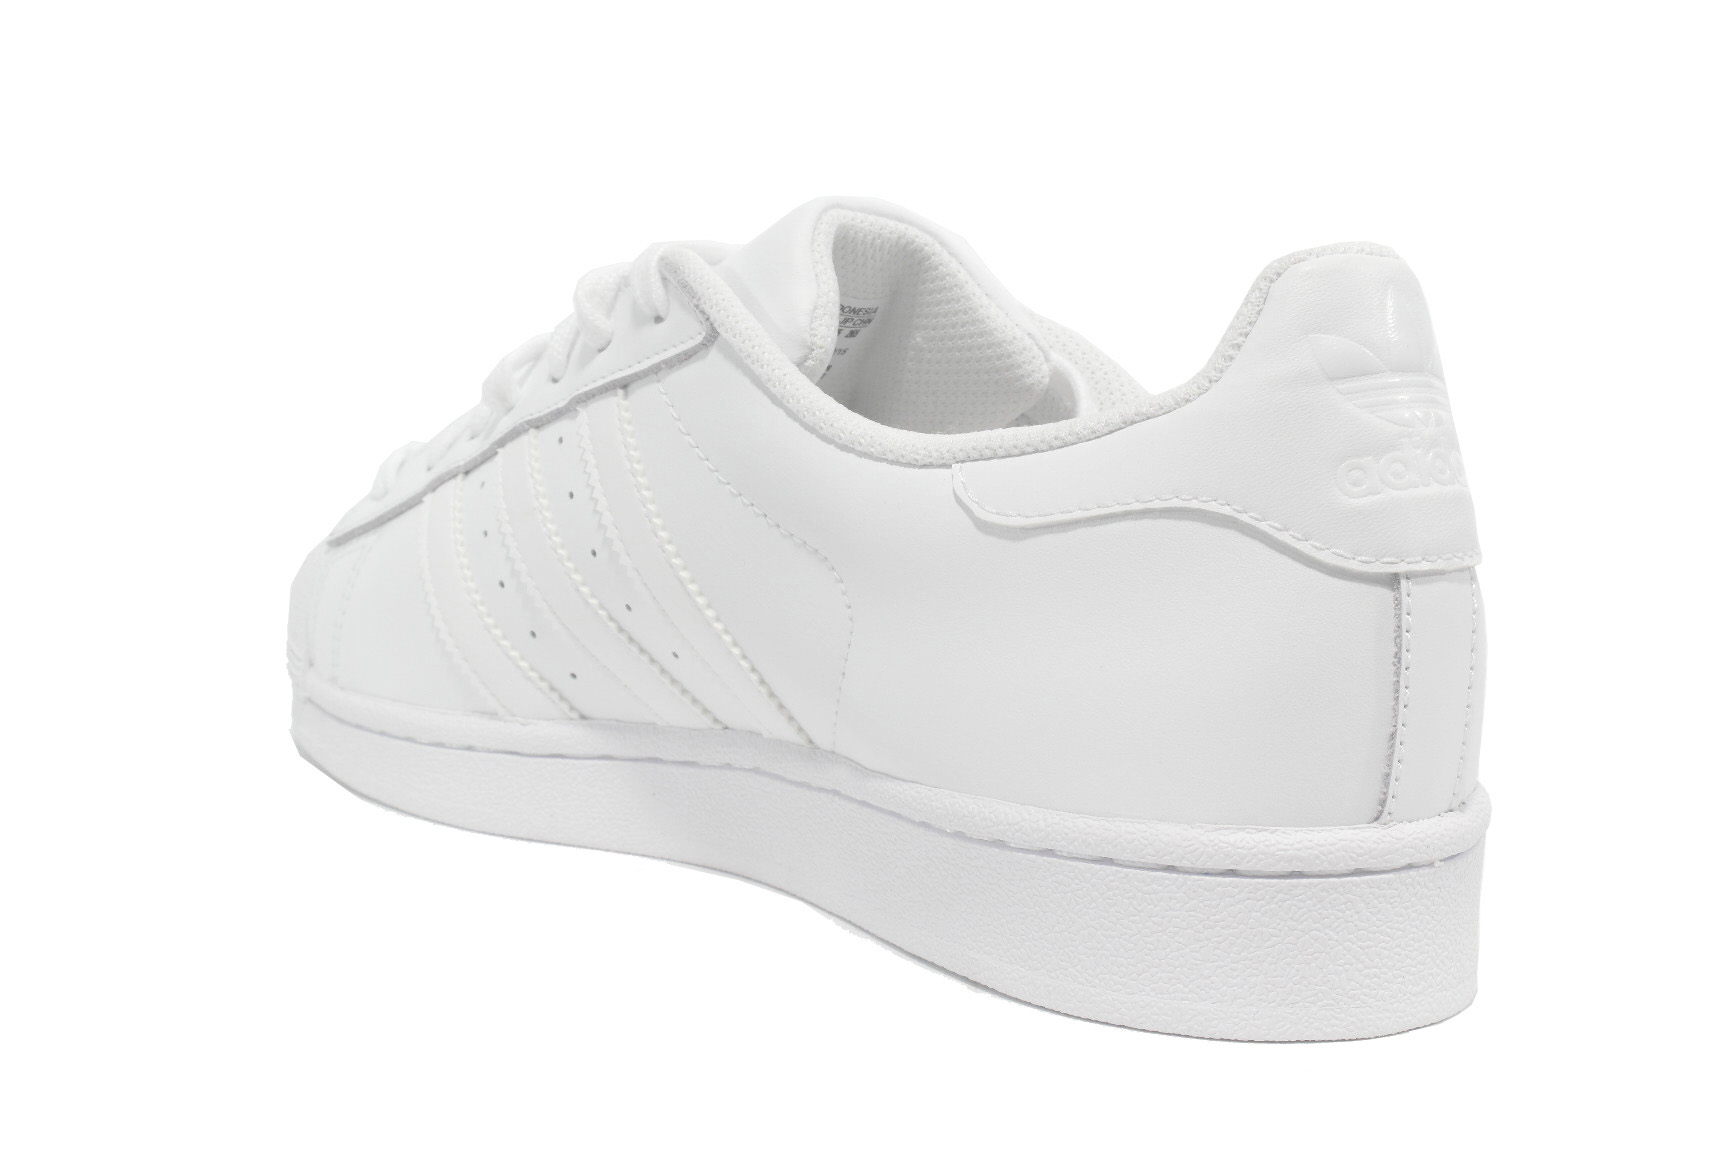 Adidas Sneakers Wit Heren